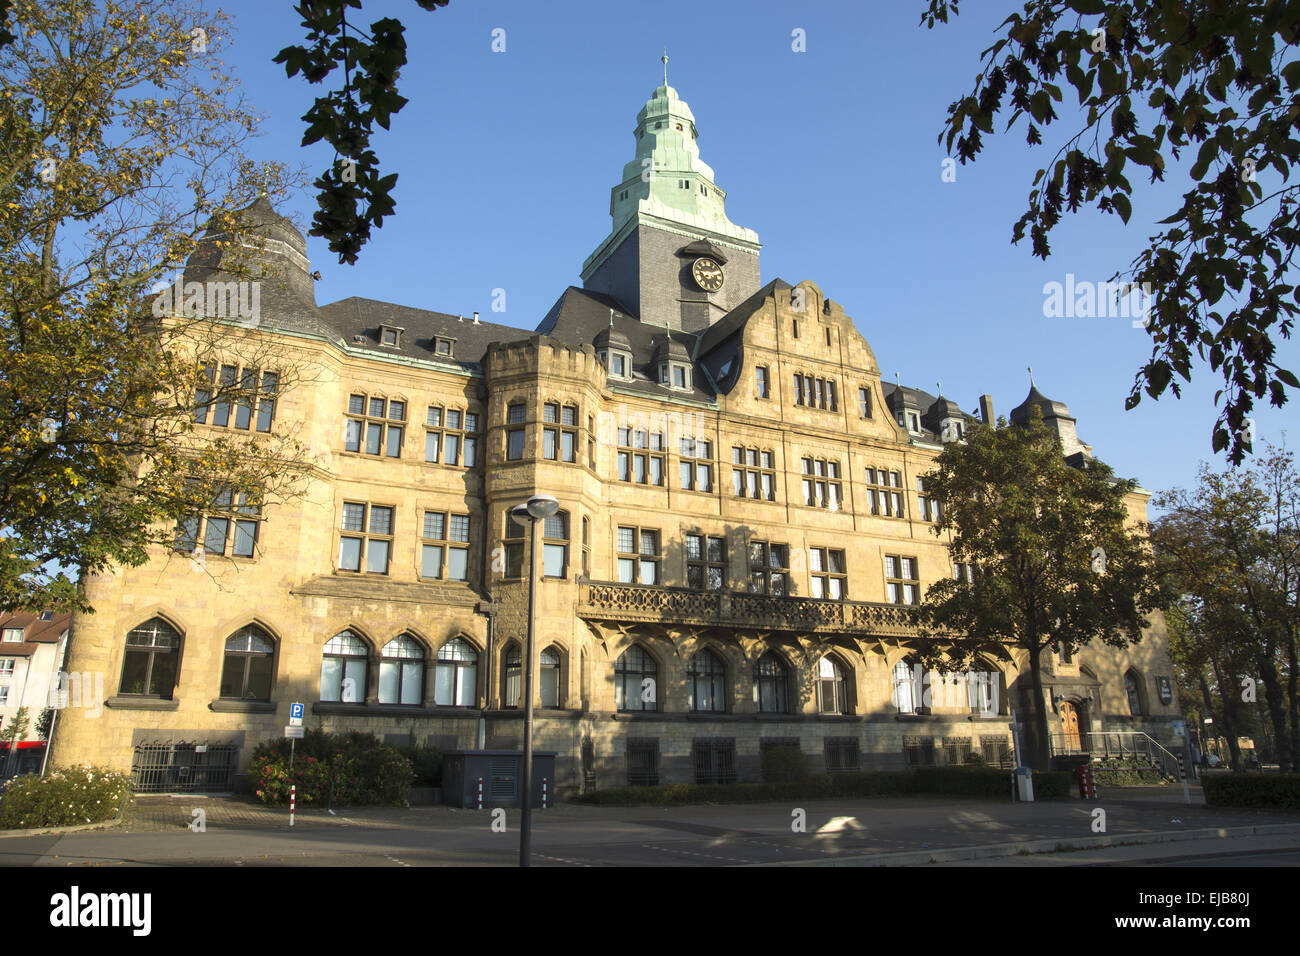 Town hall of Recklinghausen, Germany - Stock Image